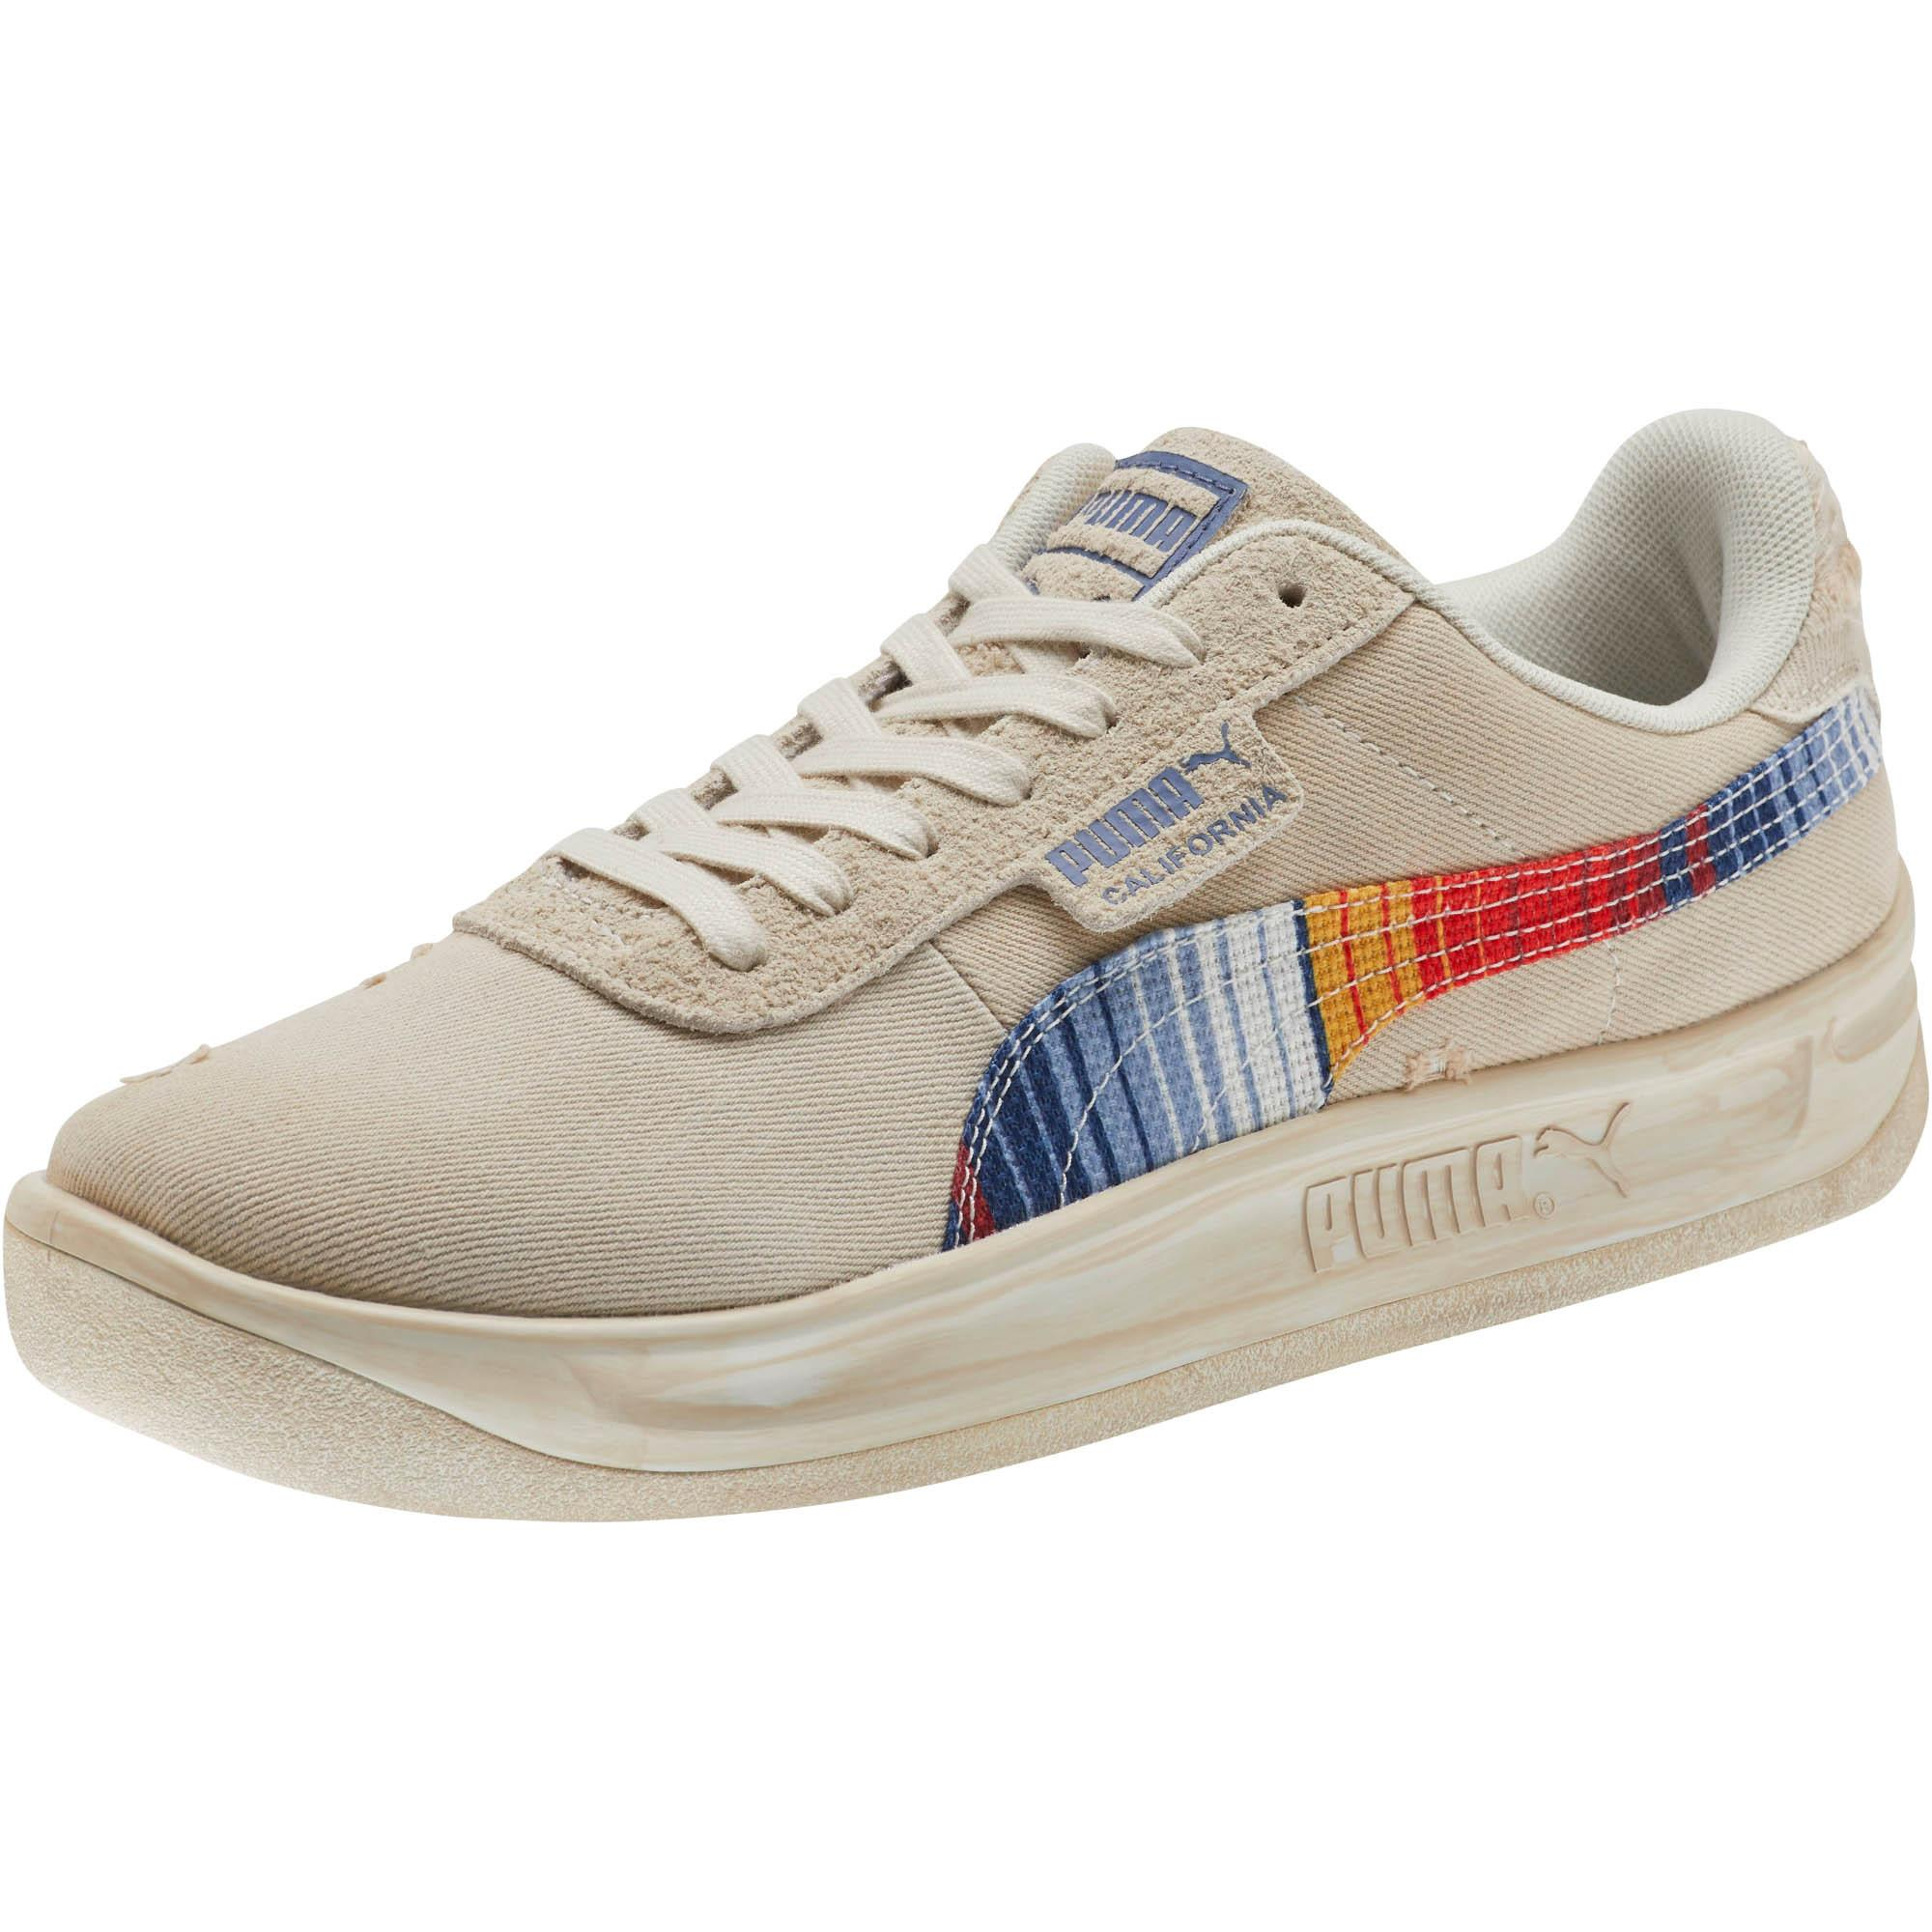 dca46aa4d7 Lyst - PUMA California Vintage Sneakers in Blue for Men